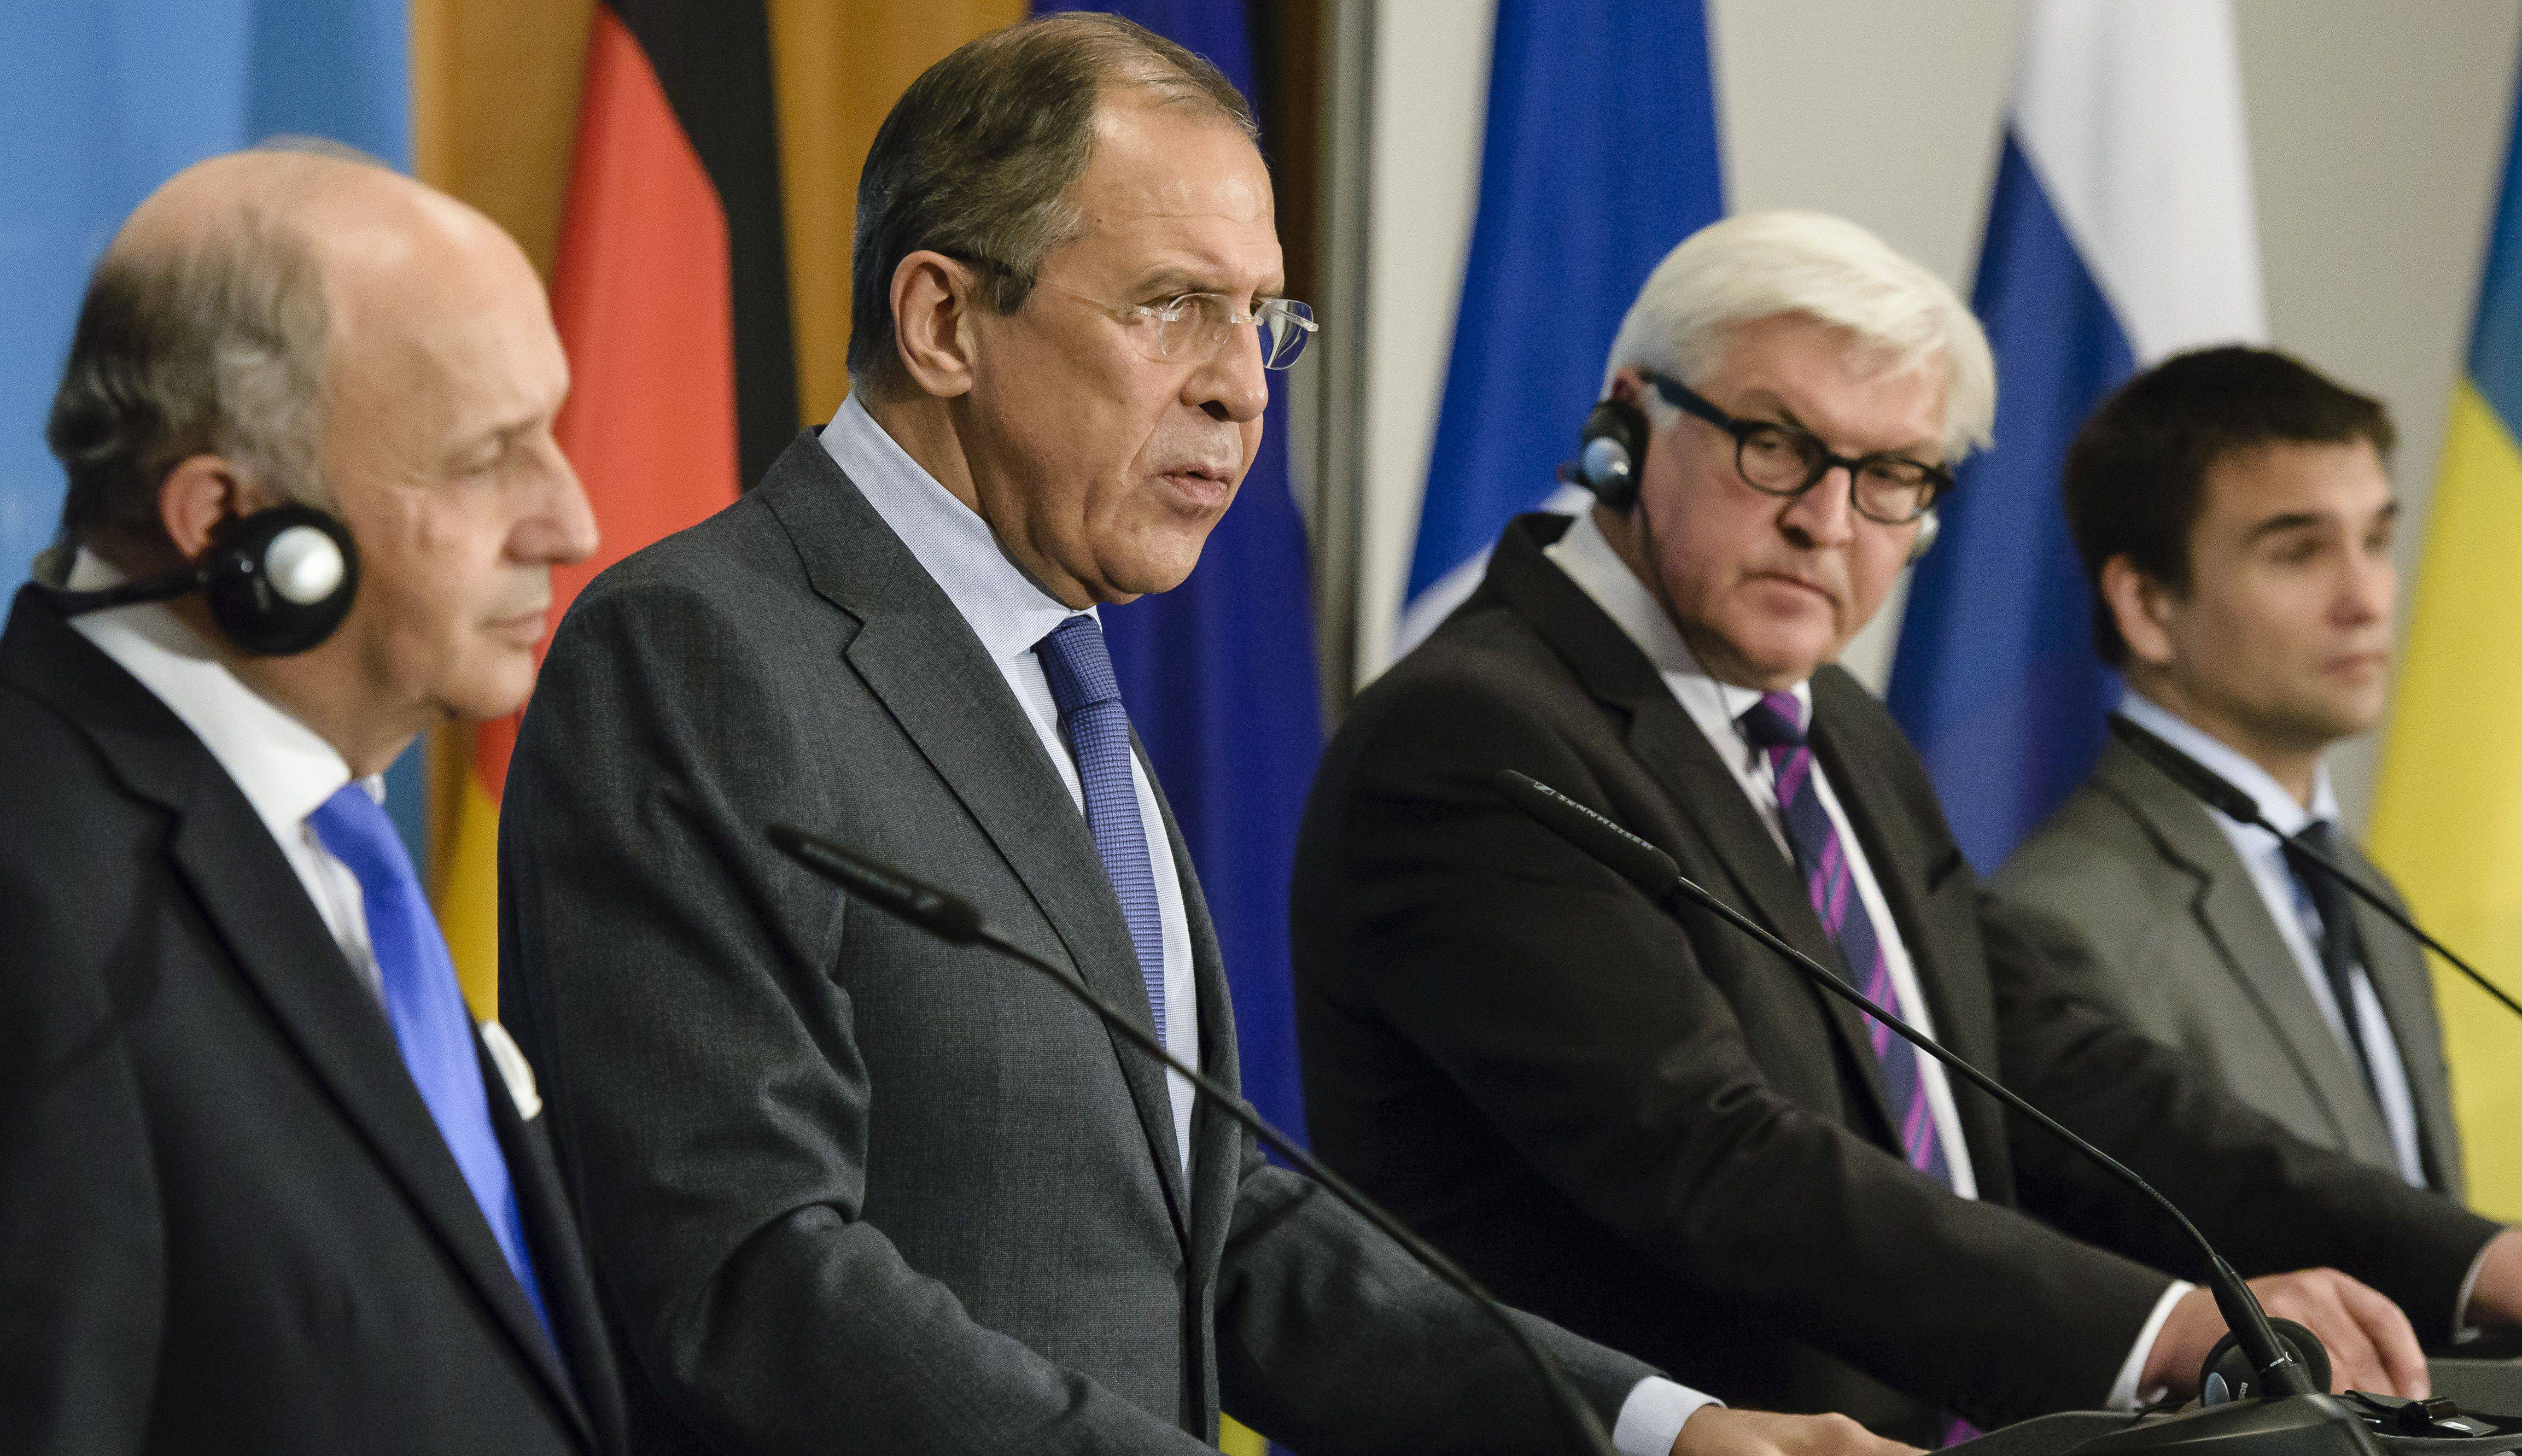 (L to R) French Foreign Minister Laurent Fabius, Russian Foreign Minister Sergei Lavrov, German Foreign Minister Frank-Walter Steinmeier and Ukrainian Foreign Minister Pavlo Klimkin address a joint press conference after talks at in Berlin.